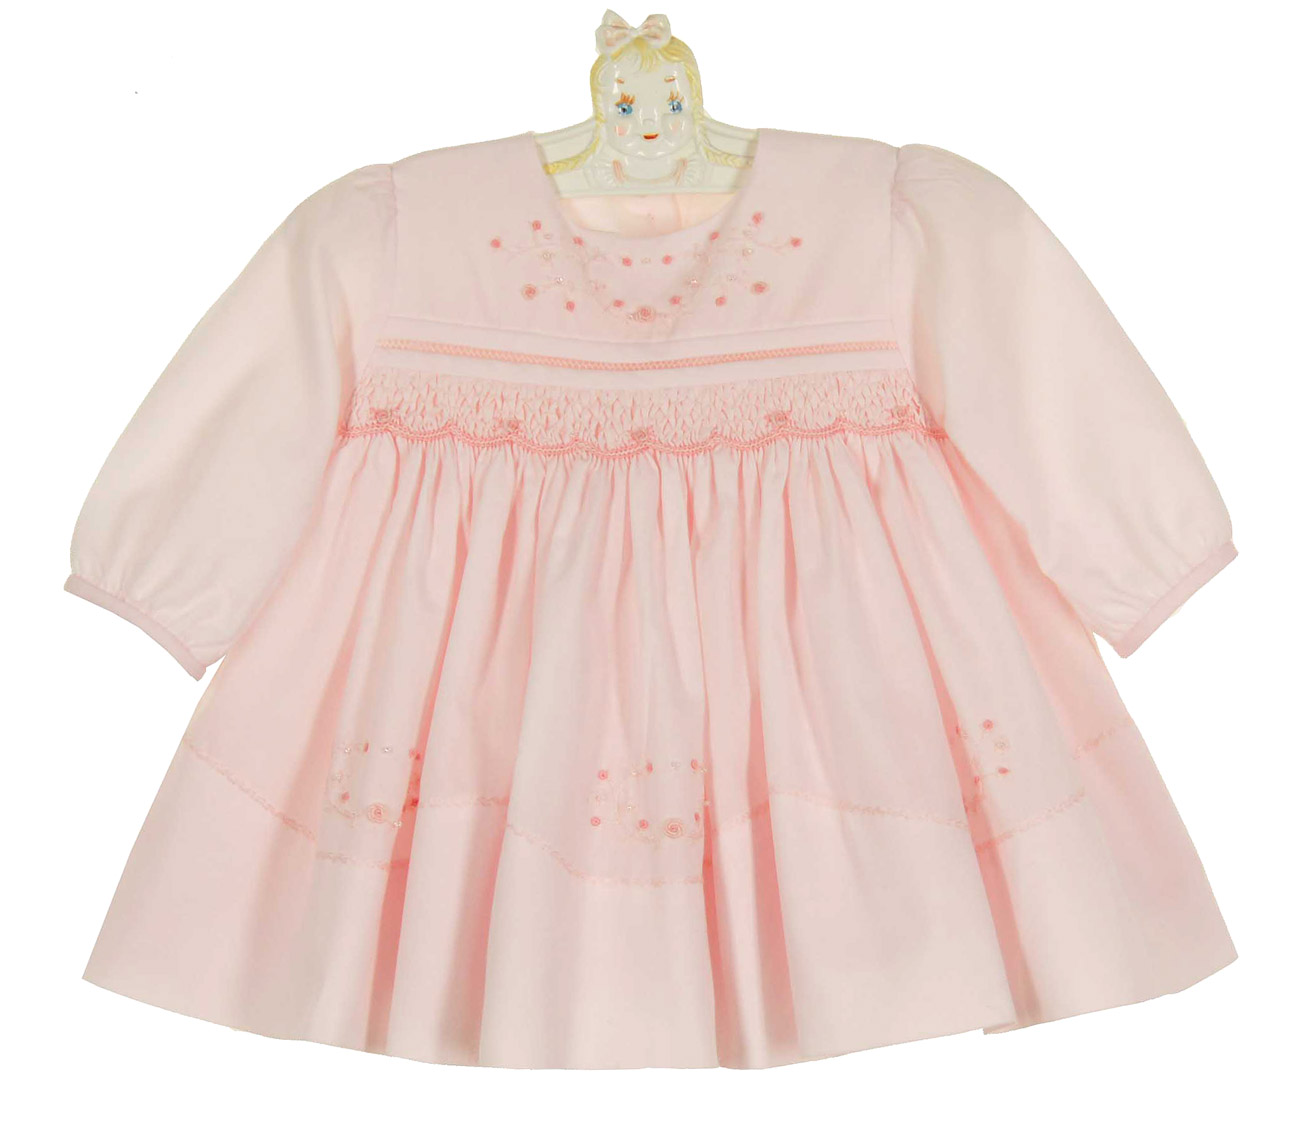 Sarah Louise pink smocked dress with beading and